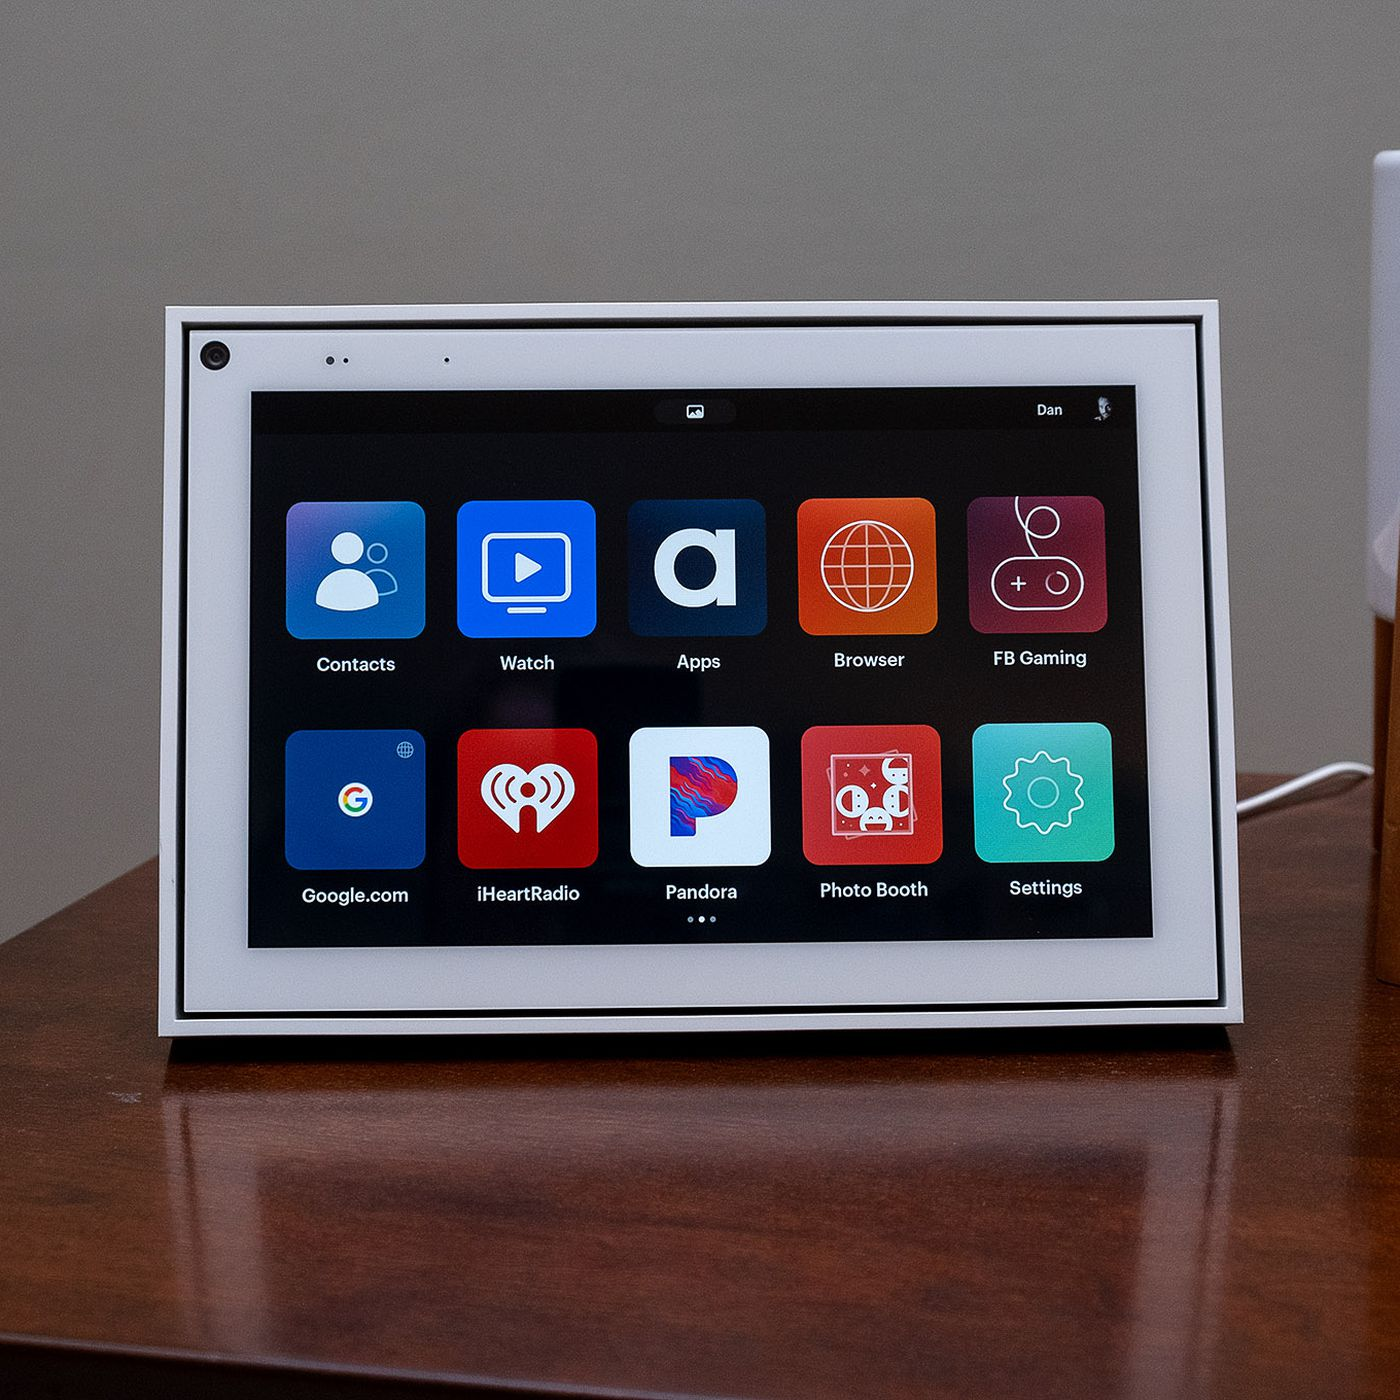 Facebook Portal 10 Inch 2019 Review Better Design Familiar Limitations The Verge We went hands on with the new smart home device. facebook portal 10 inch 2019 review